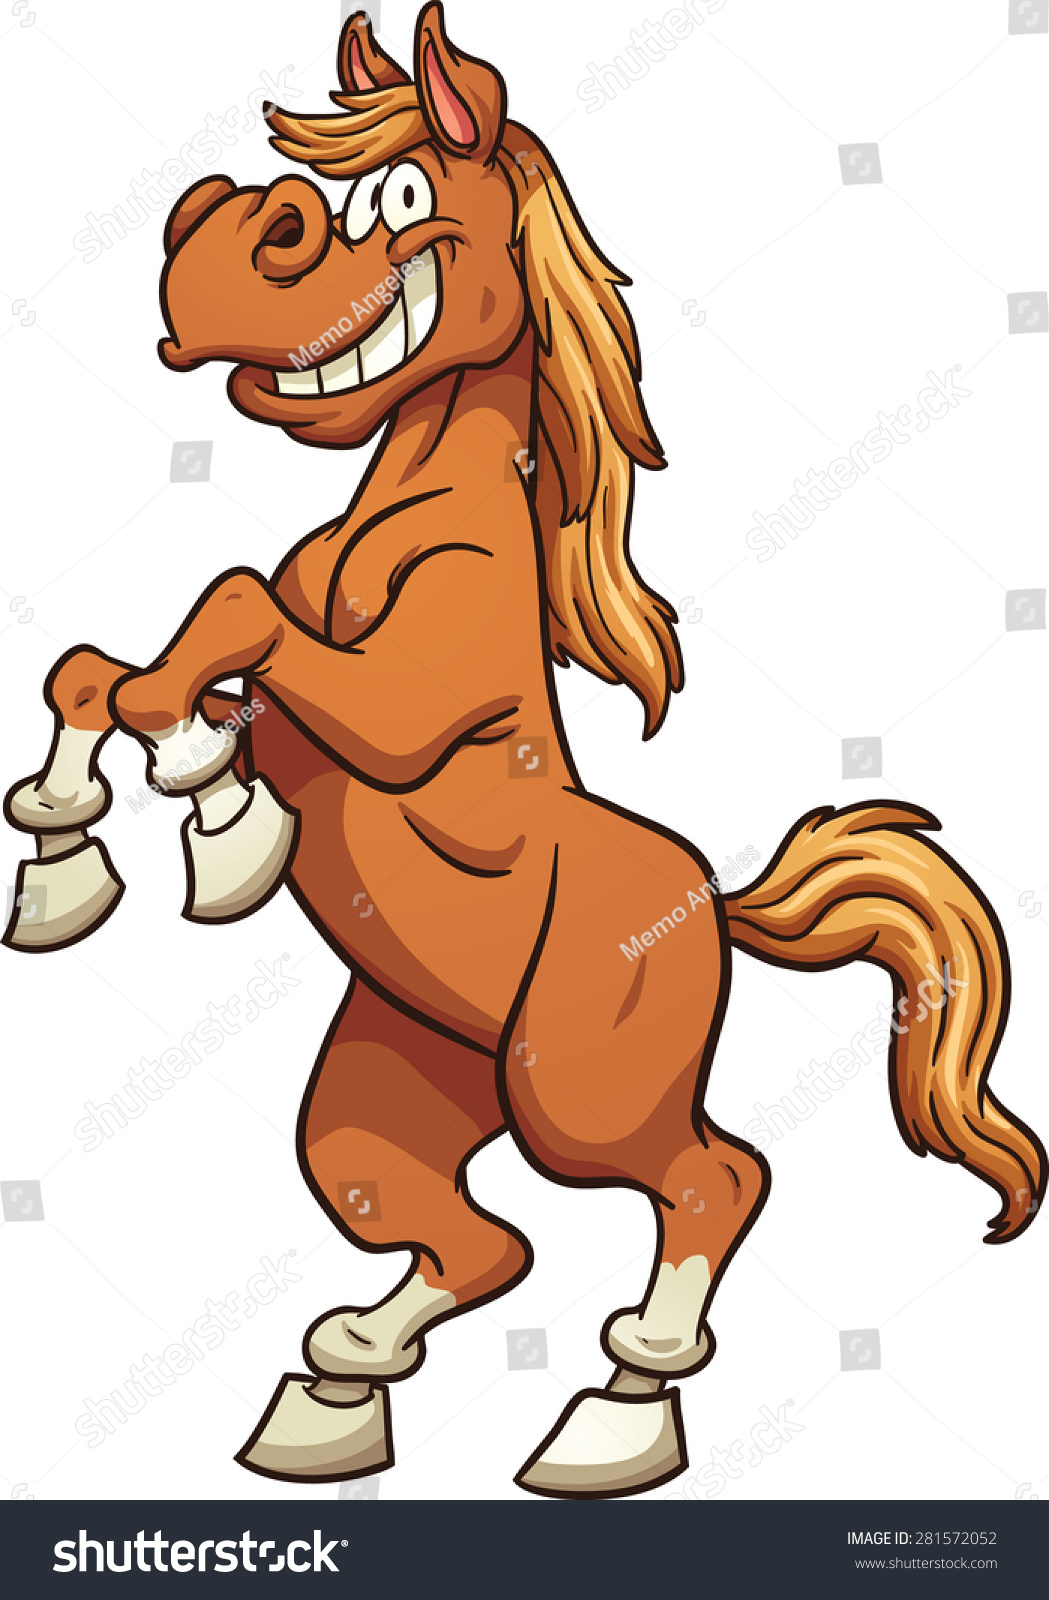 cartoon horse standing on two legs stock vector 281572052